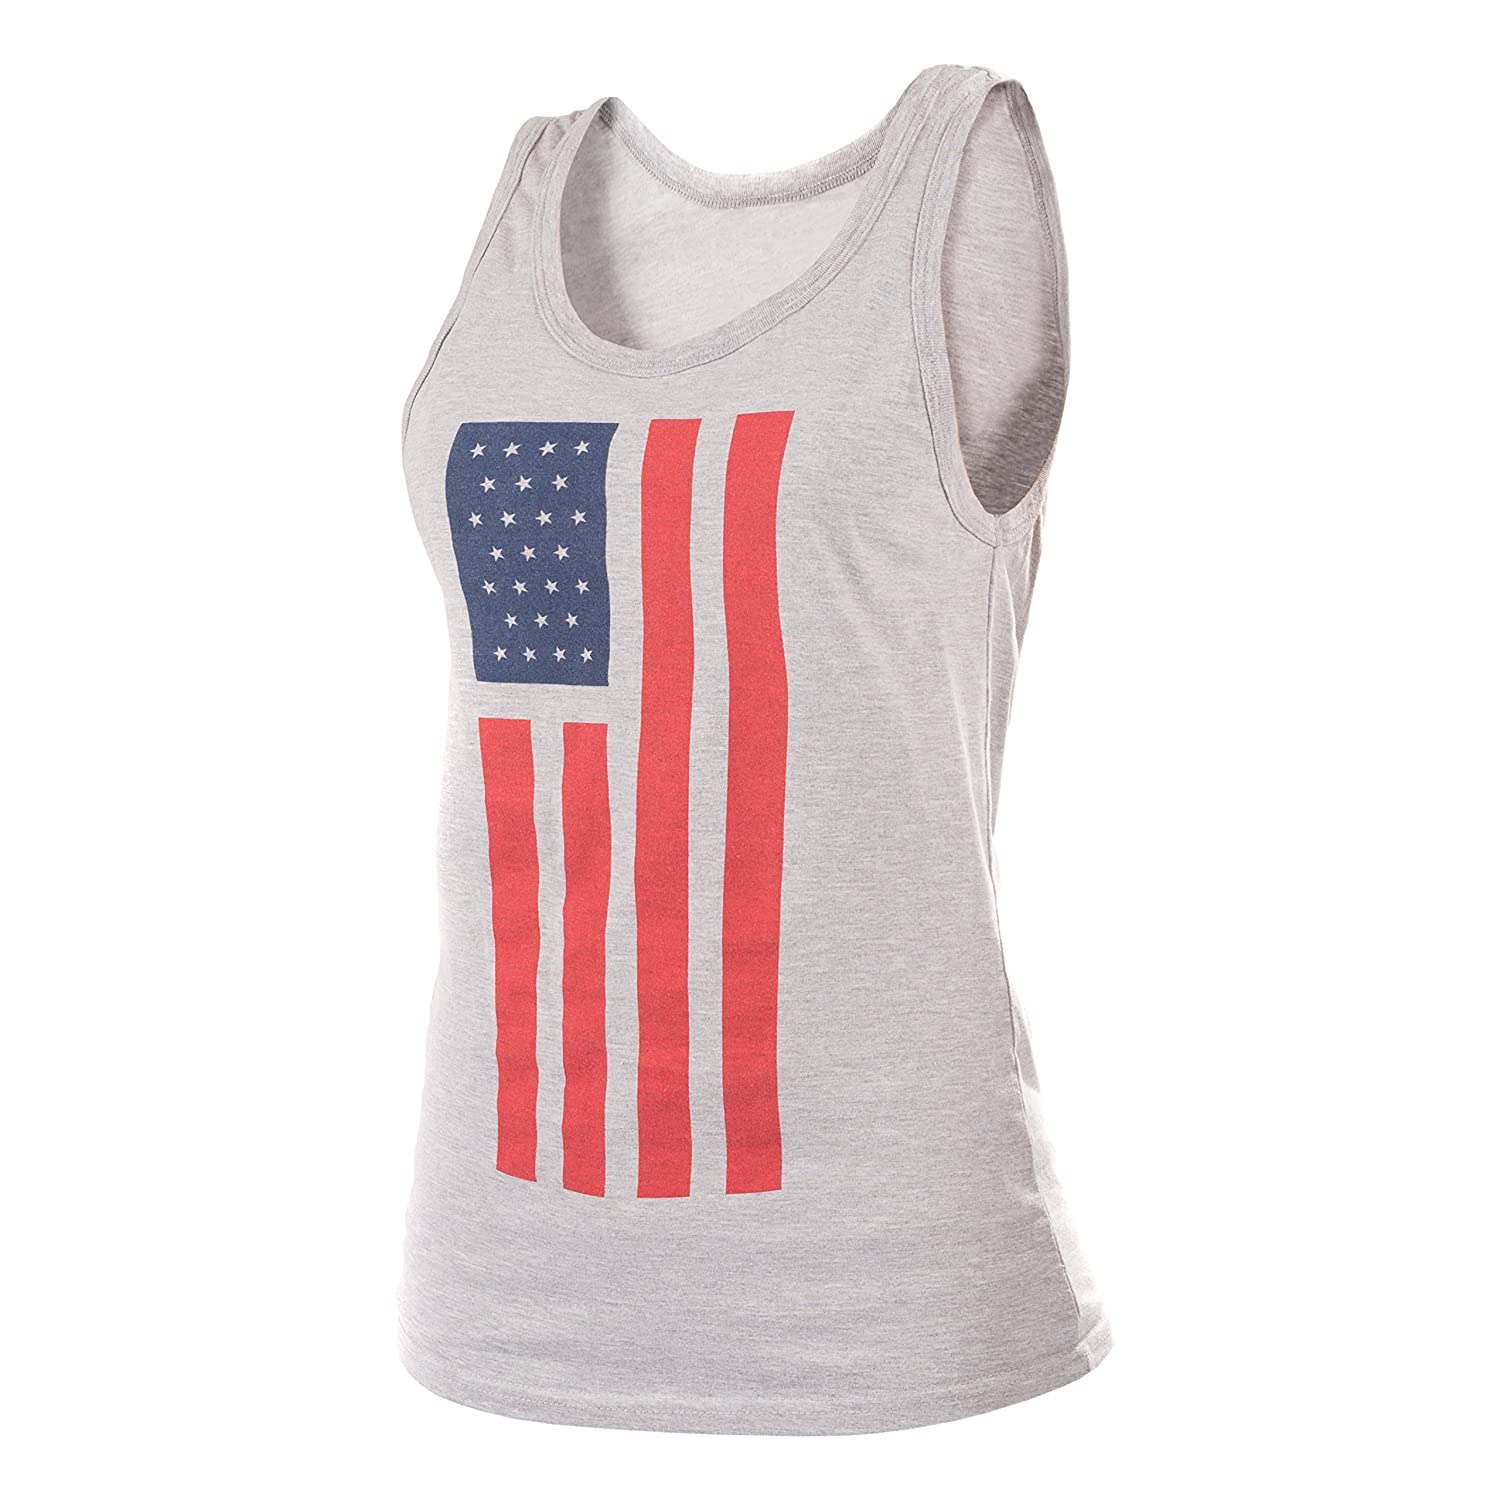 44fc4f7614191 Amazon.com  Epivive Patriotic American Flag Tank Top Shirt  Red ...